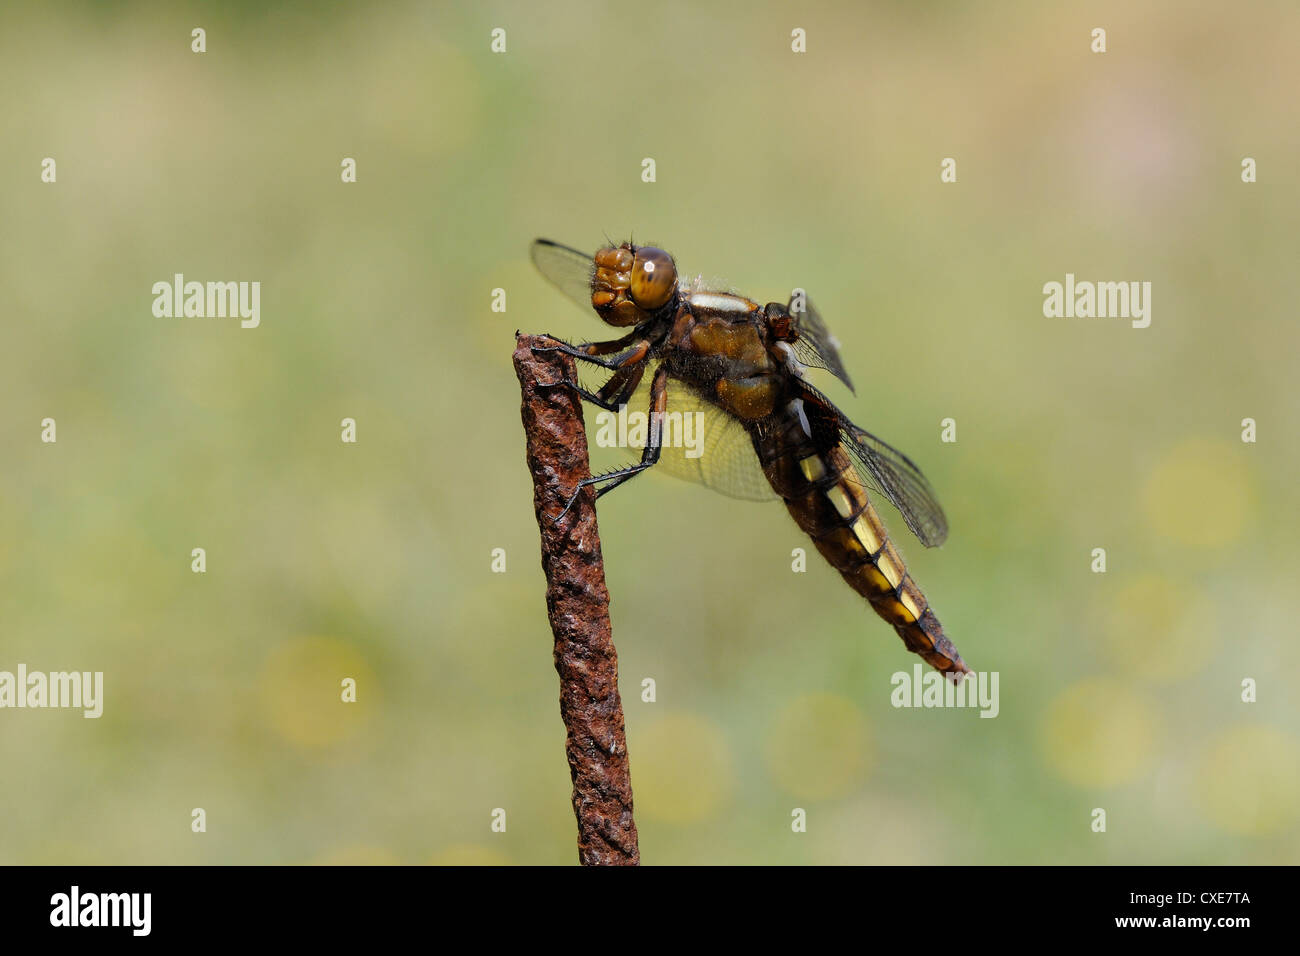 Broad-bodied chaser dragonfly (Libellula depressa) female, hunting from rusted metal fence post, Lesbos, Greece - Stock Image